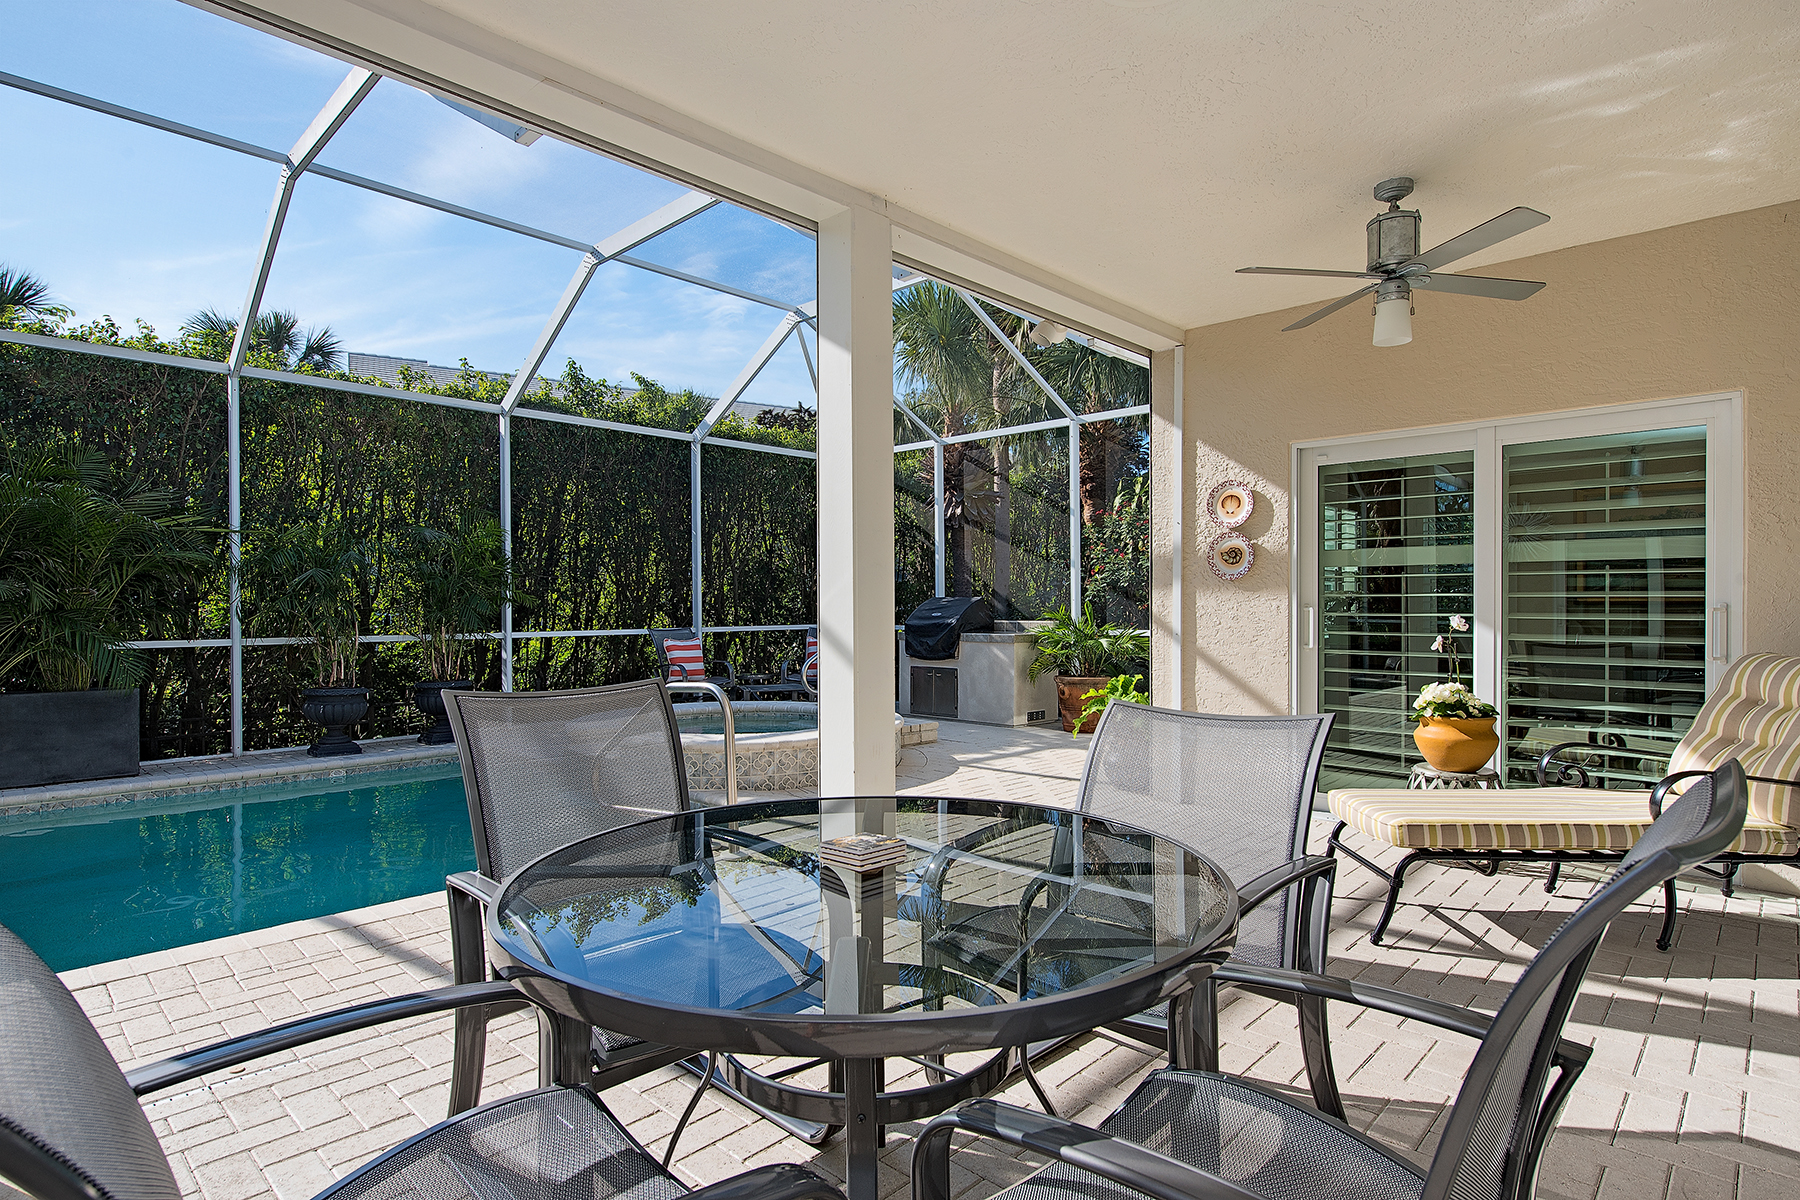 Single Family Home for Sale at PELICAN BAY - CHANTECLAIR MANOR 5925 Chanteclair Dr, Naples, Florida 34108 United States